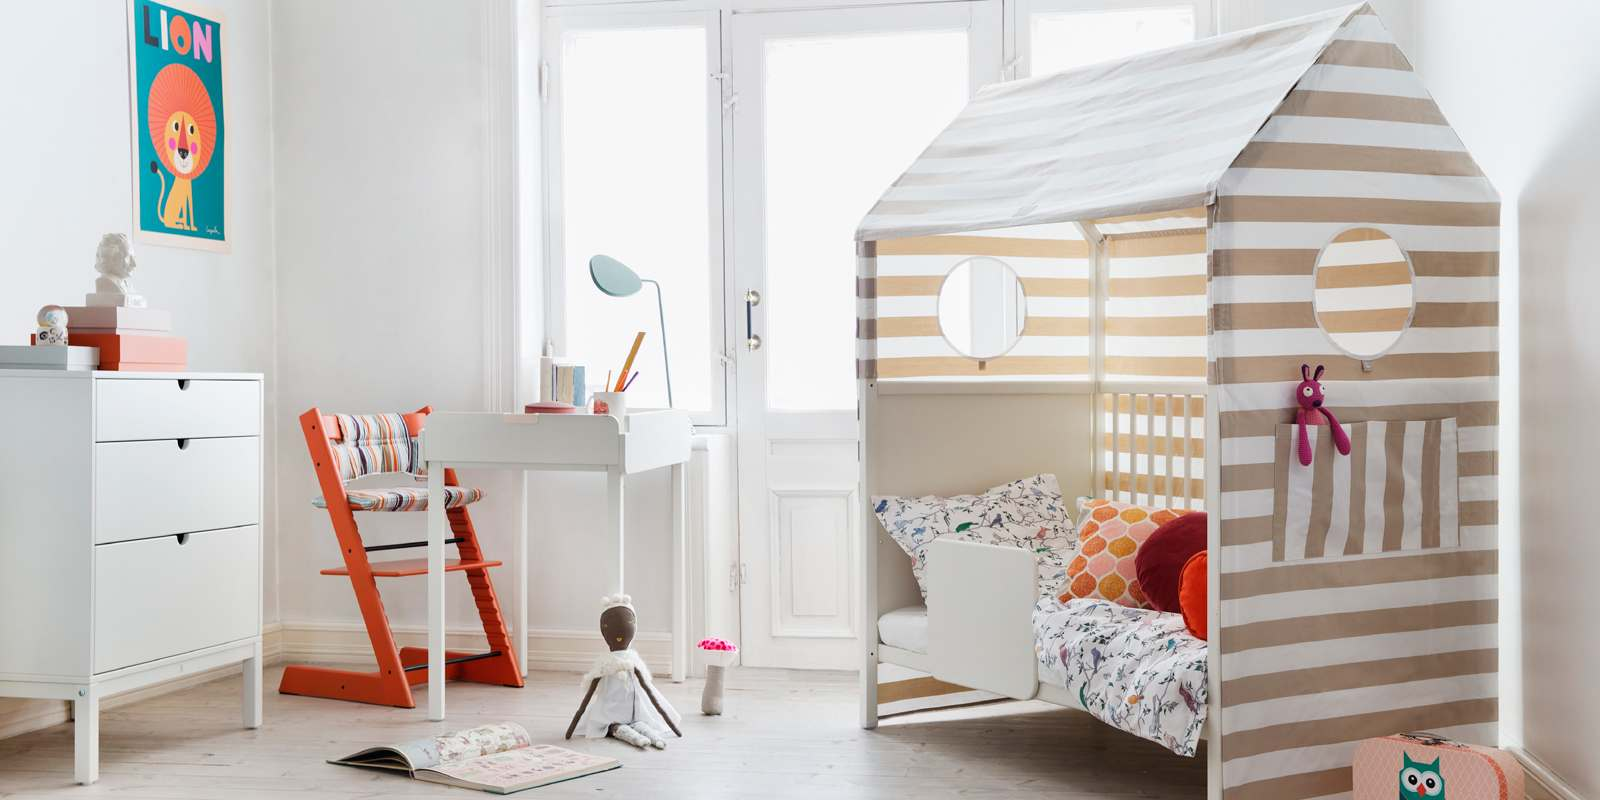 /home Stokke Home Bed